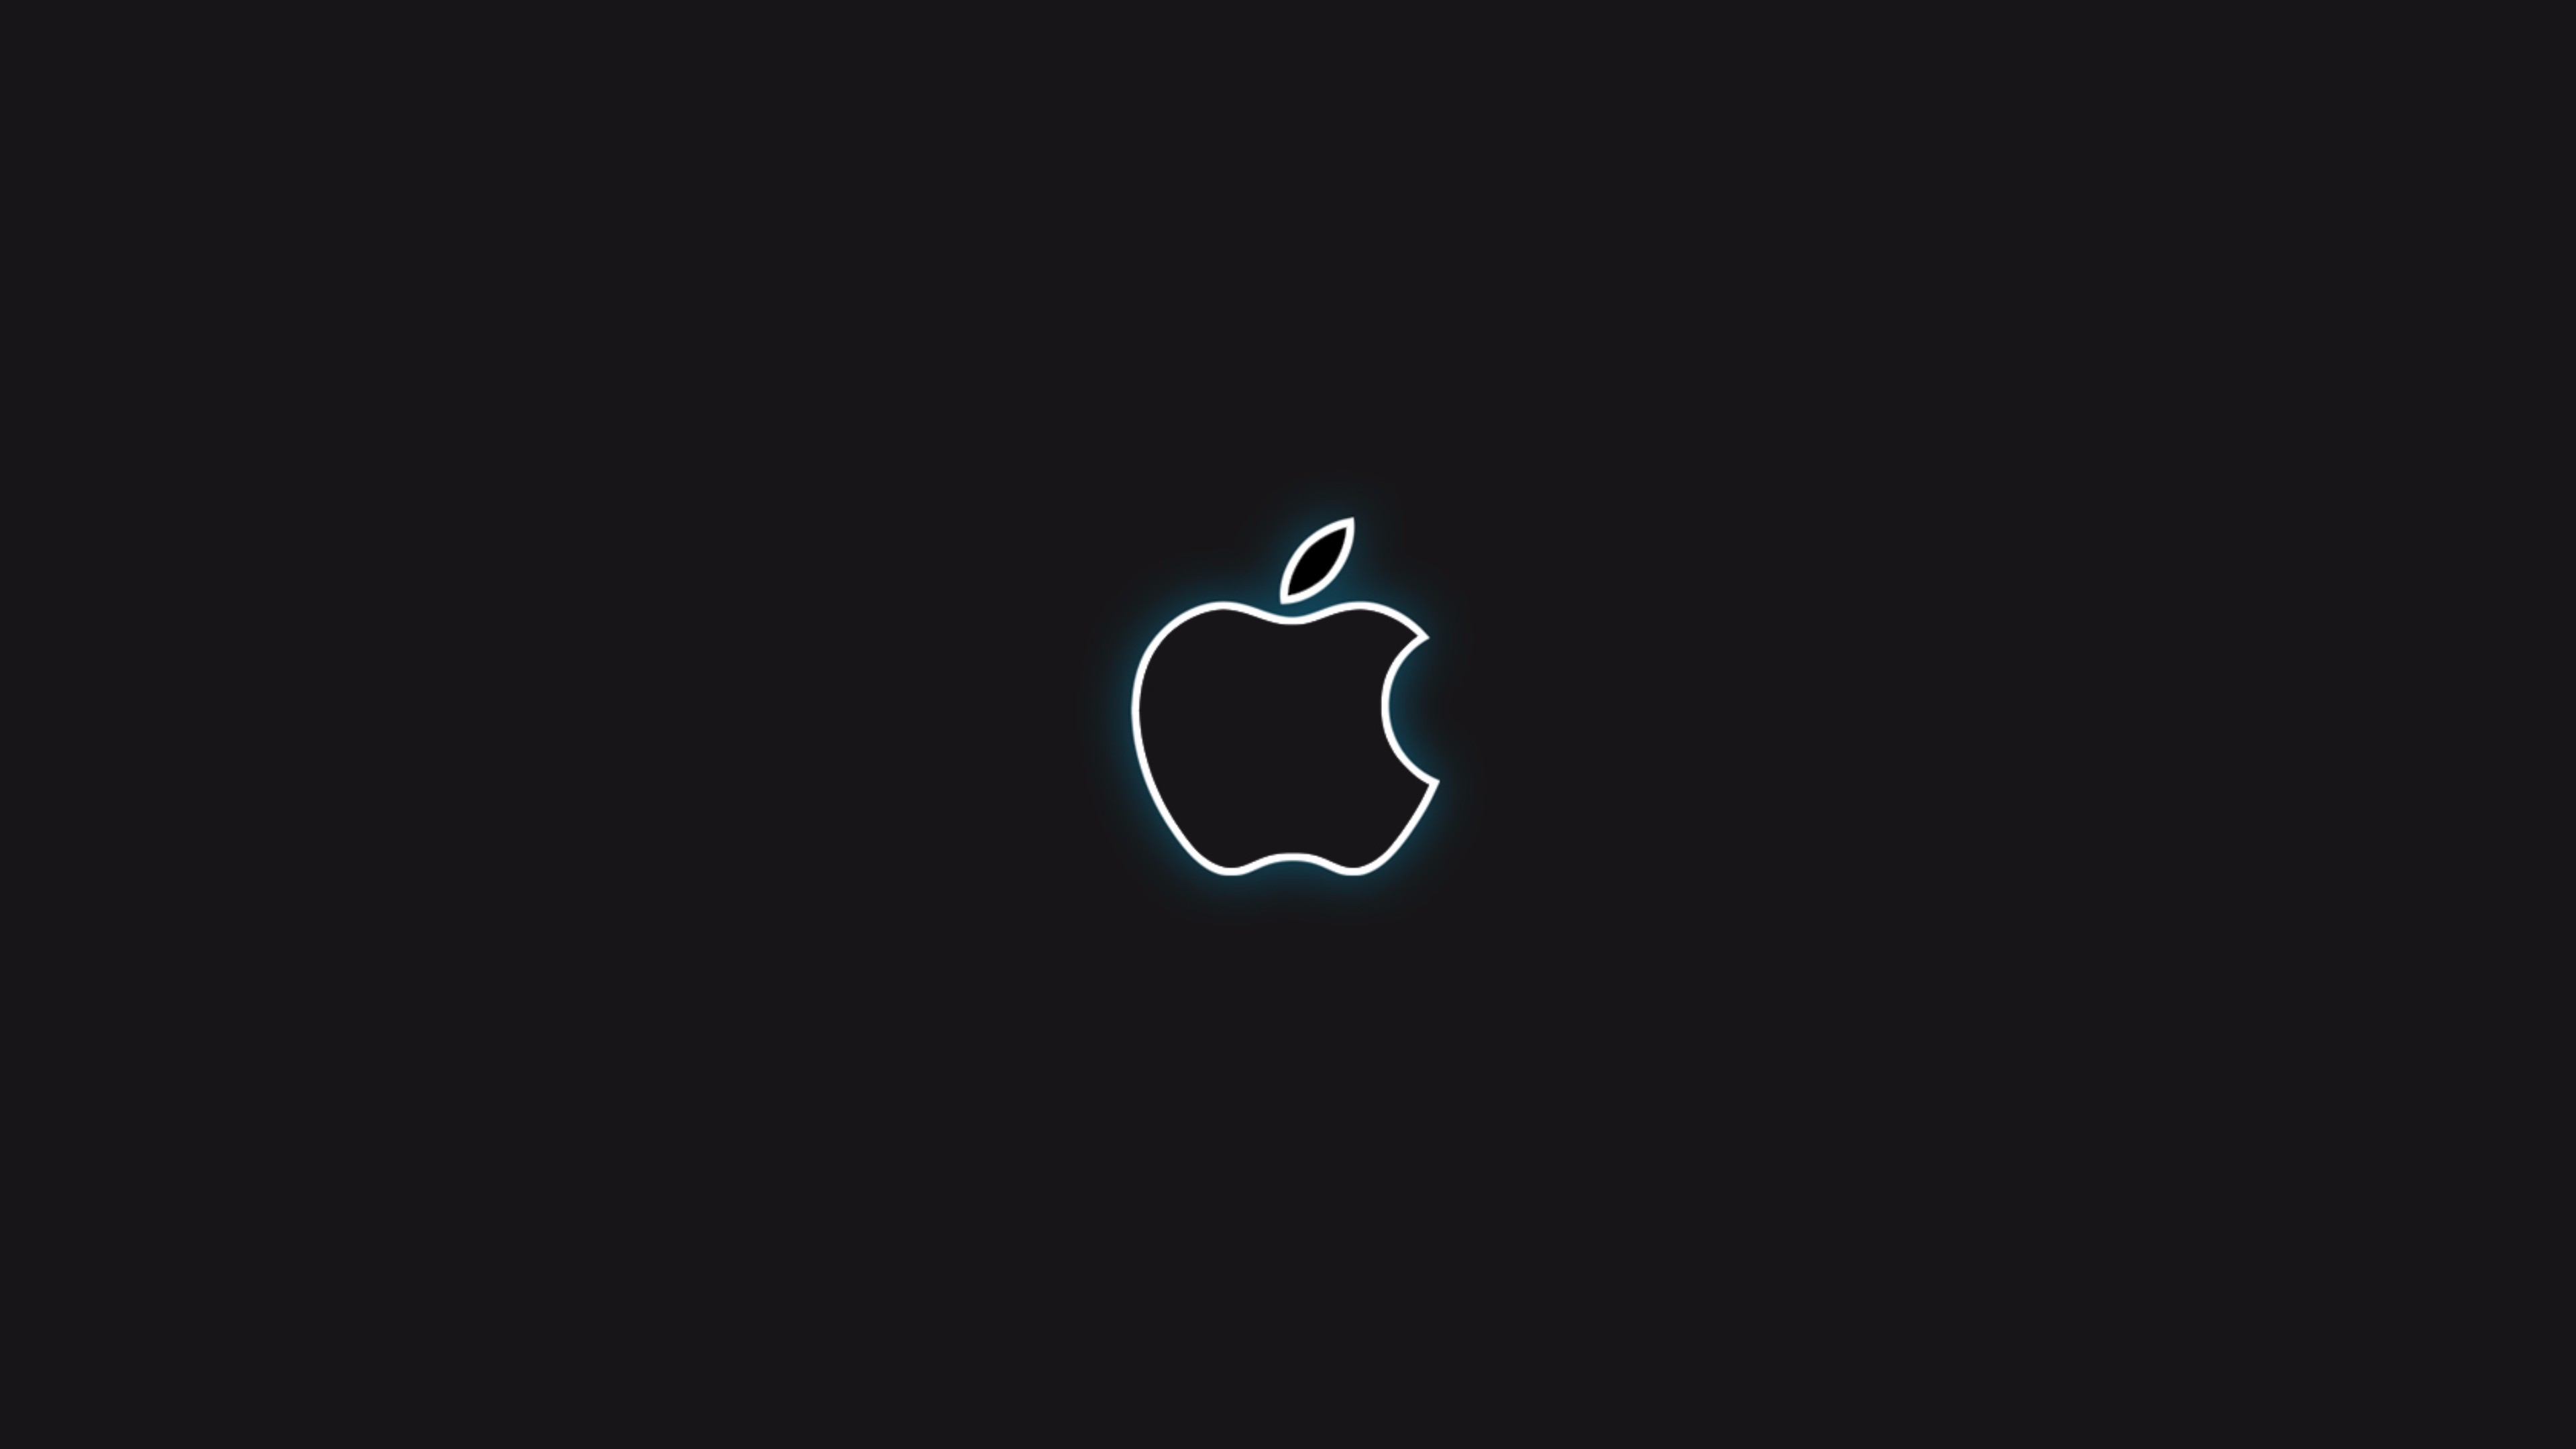 wallpapers apple 4k black apple logo 4k wallpaper free 4k wallpaper widescreen